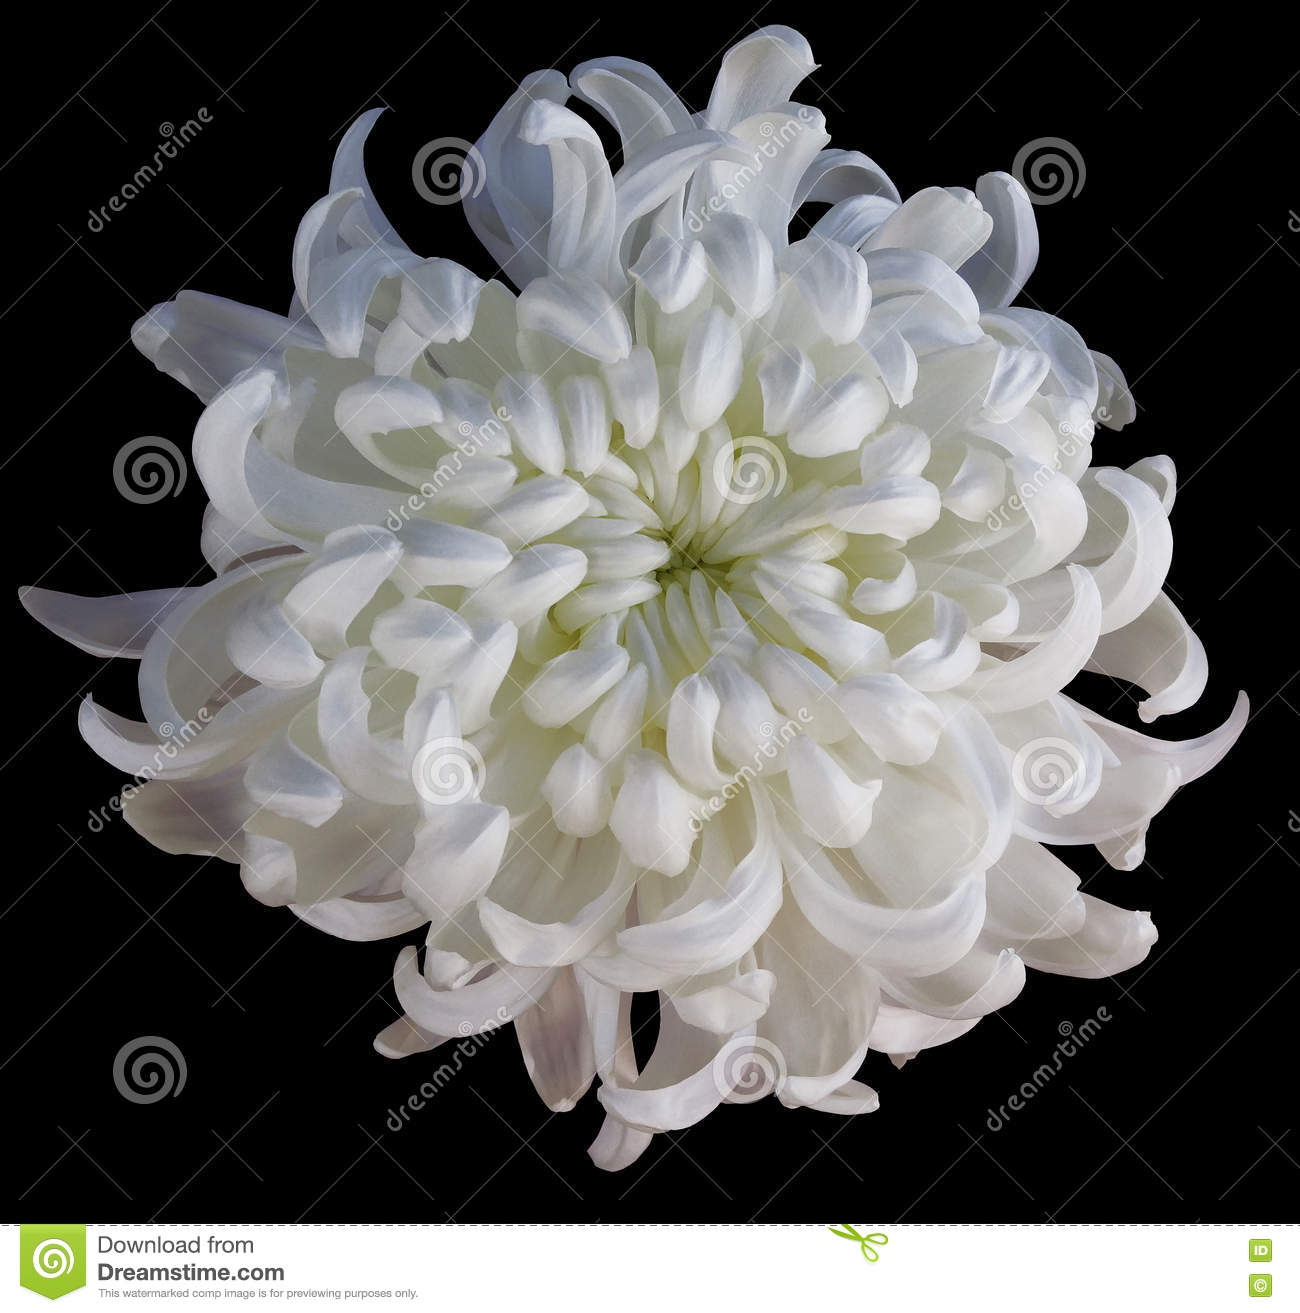 Chrysanthemum White Flower Isolated With Clipping Path On A Black